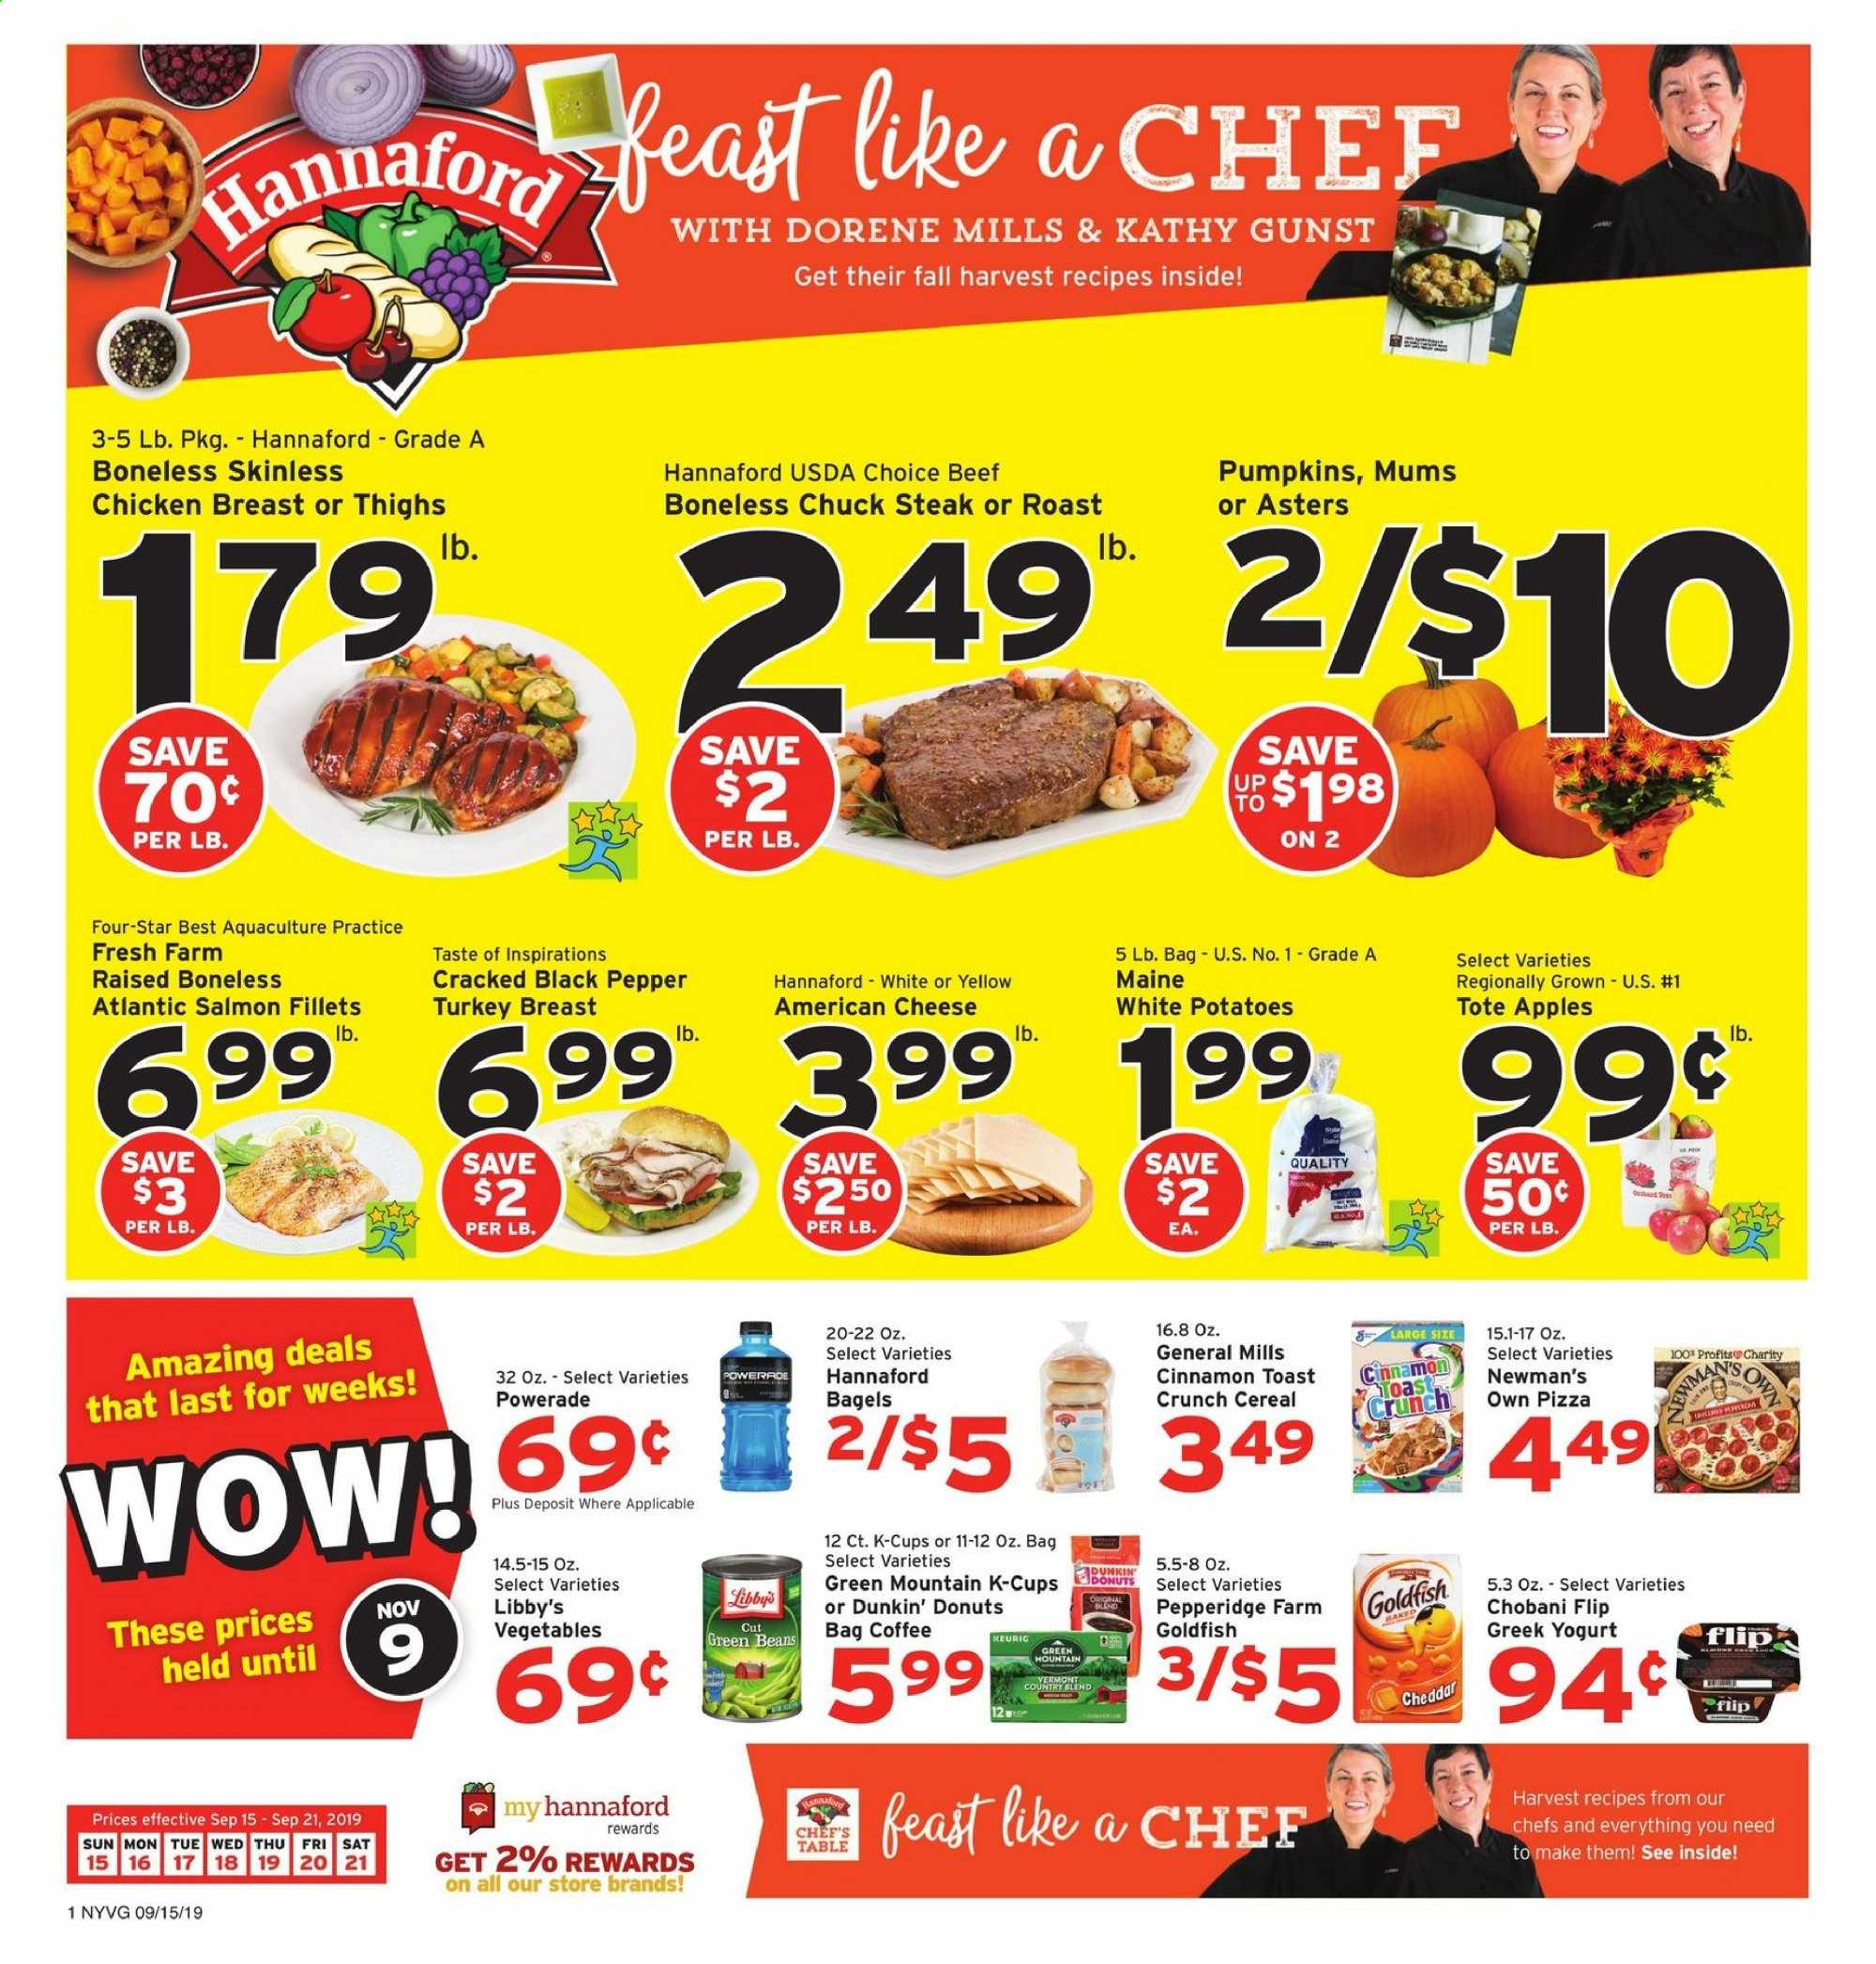 Hannaford Flyer  - 09.15.2019 - 09.21.2019. Page 1.